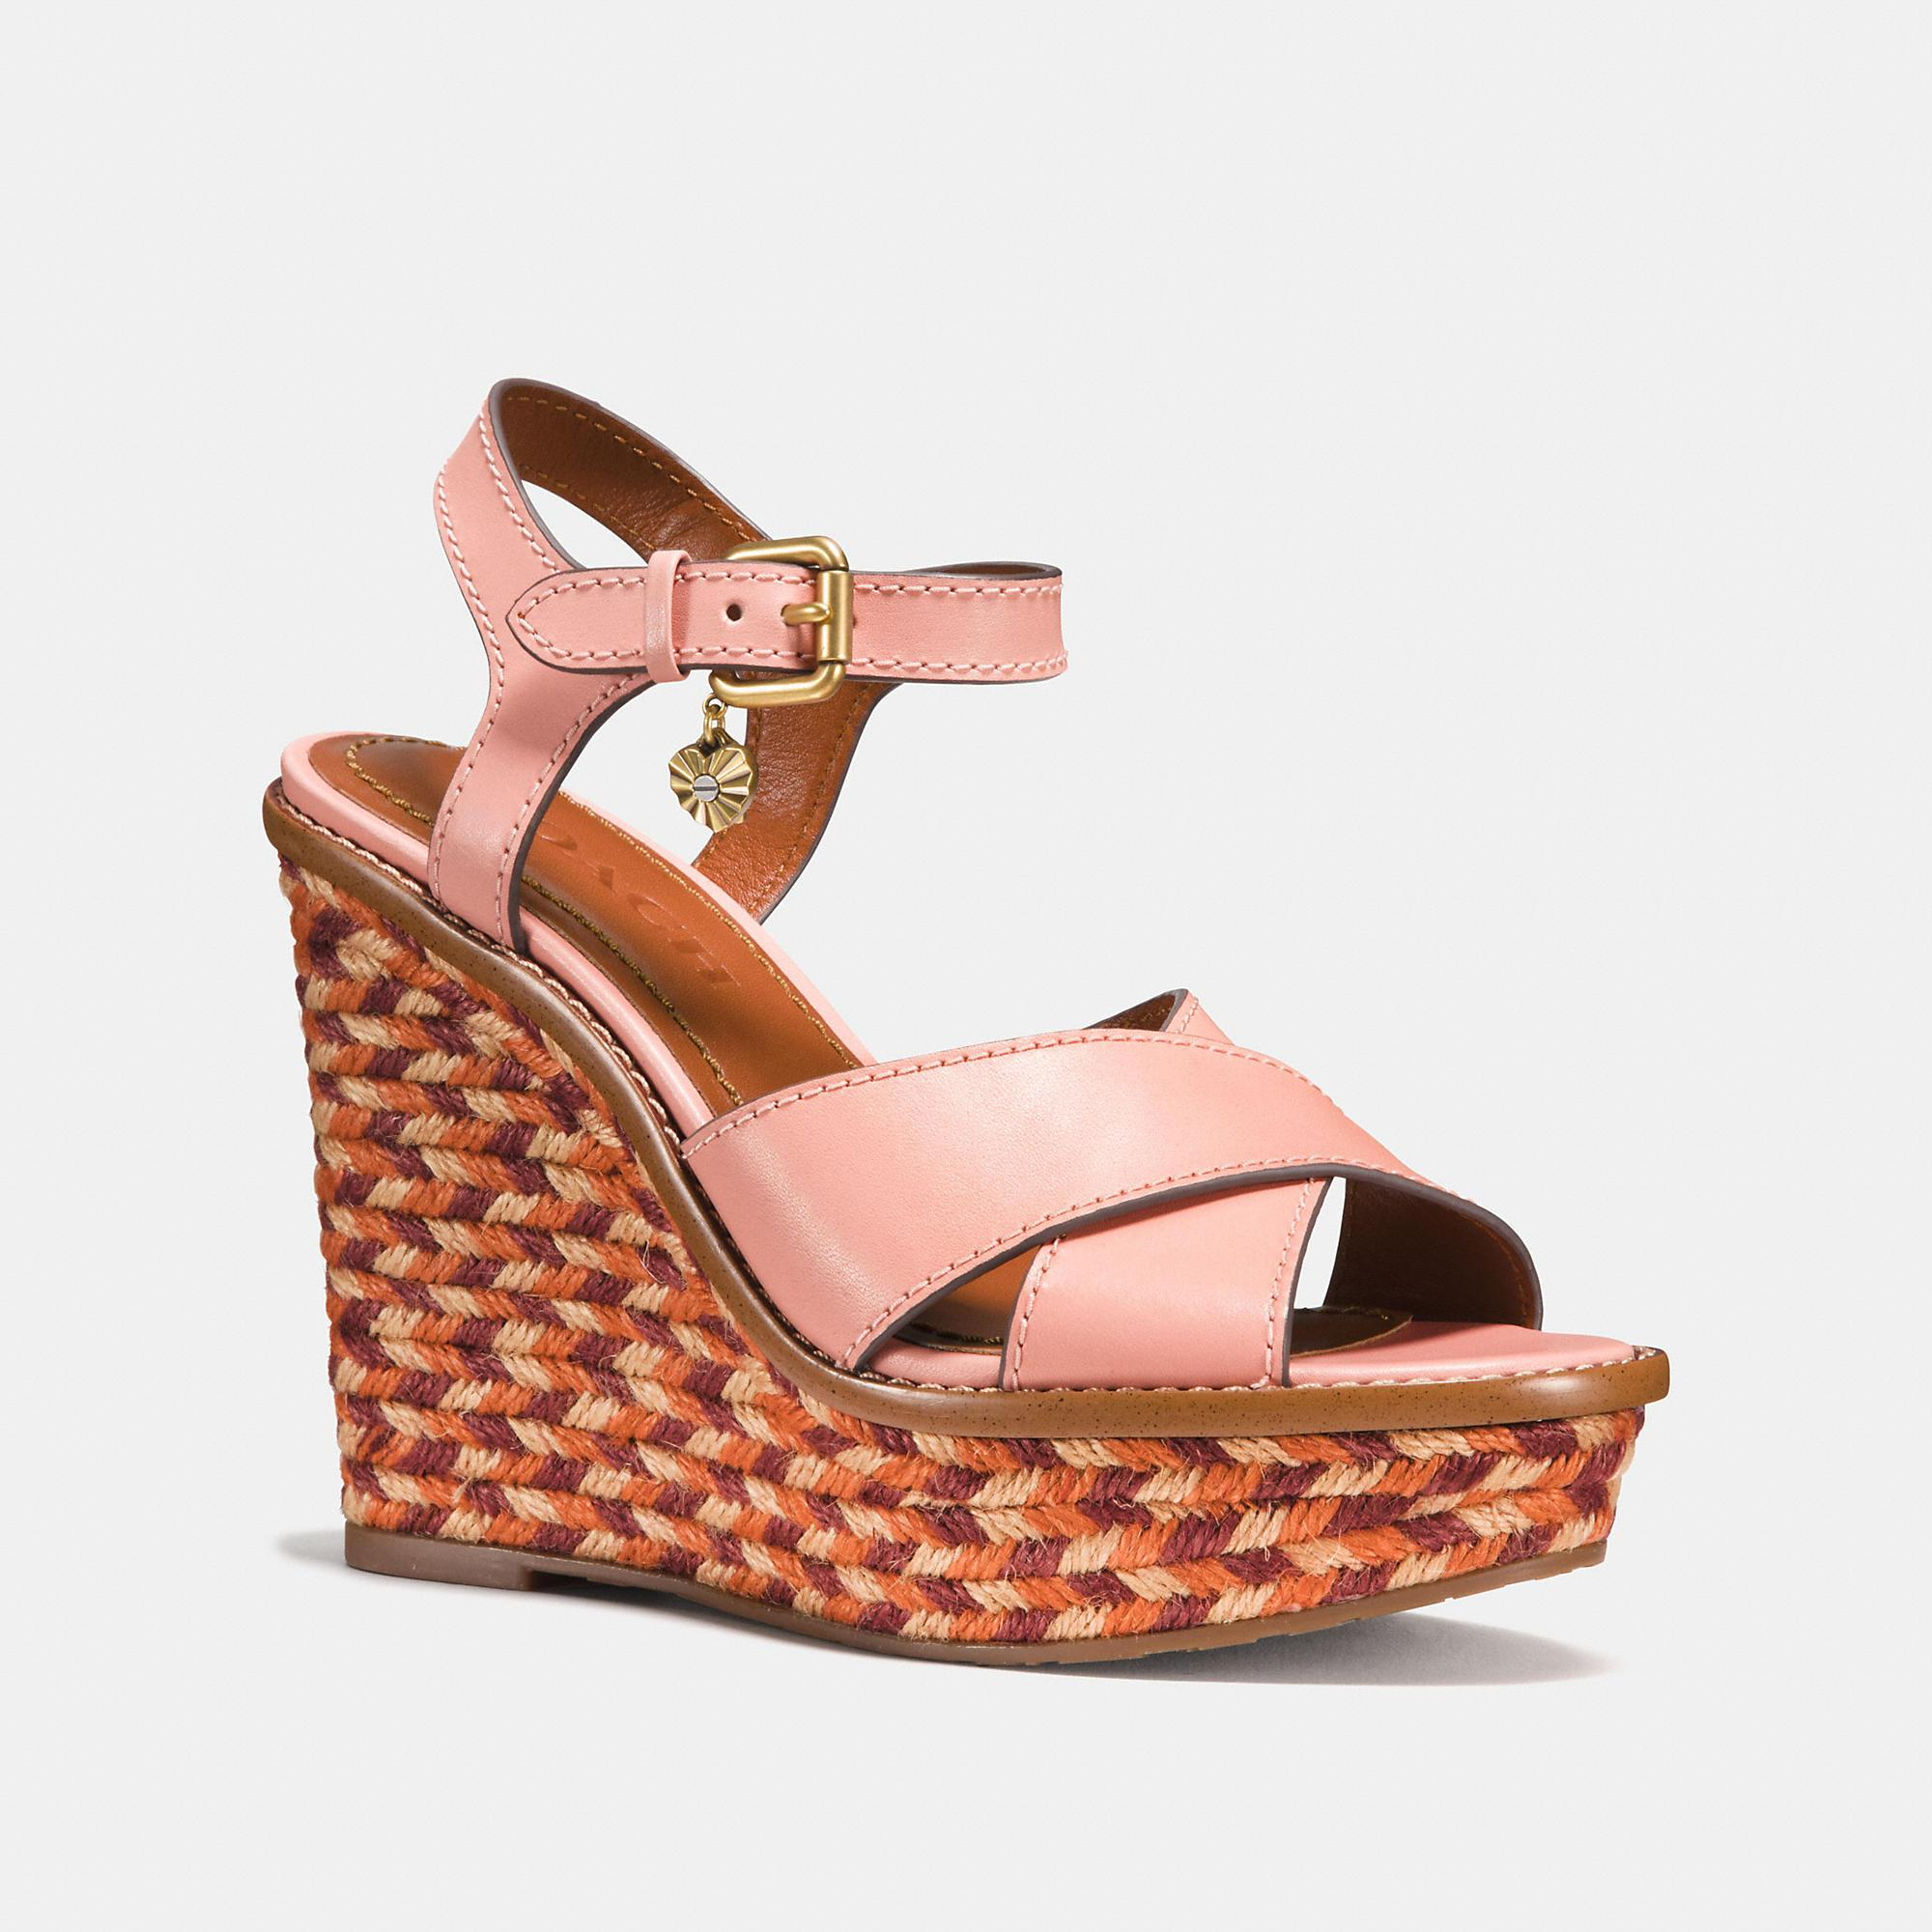 55020937948 Coach Cross Band High Wedge Sandal In Peony